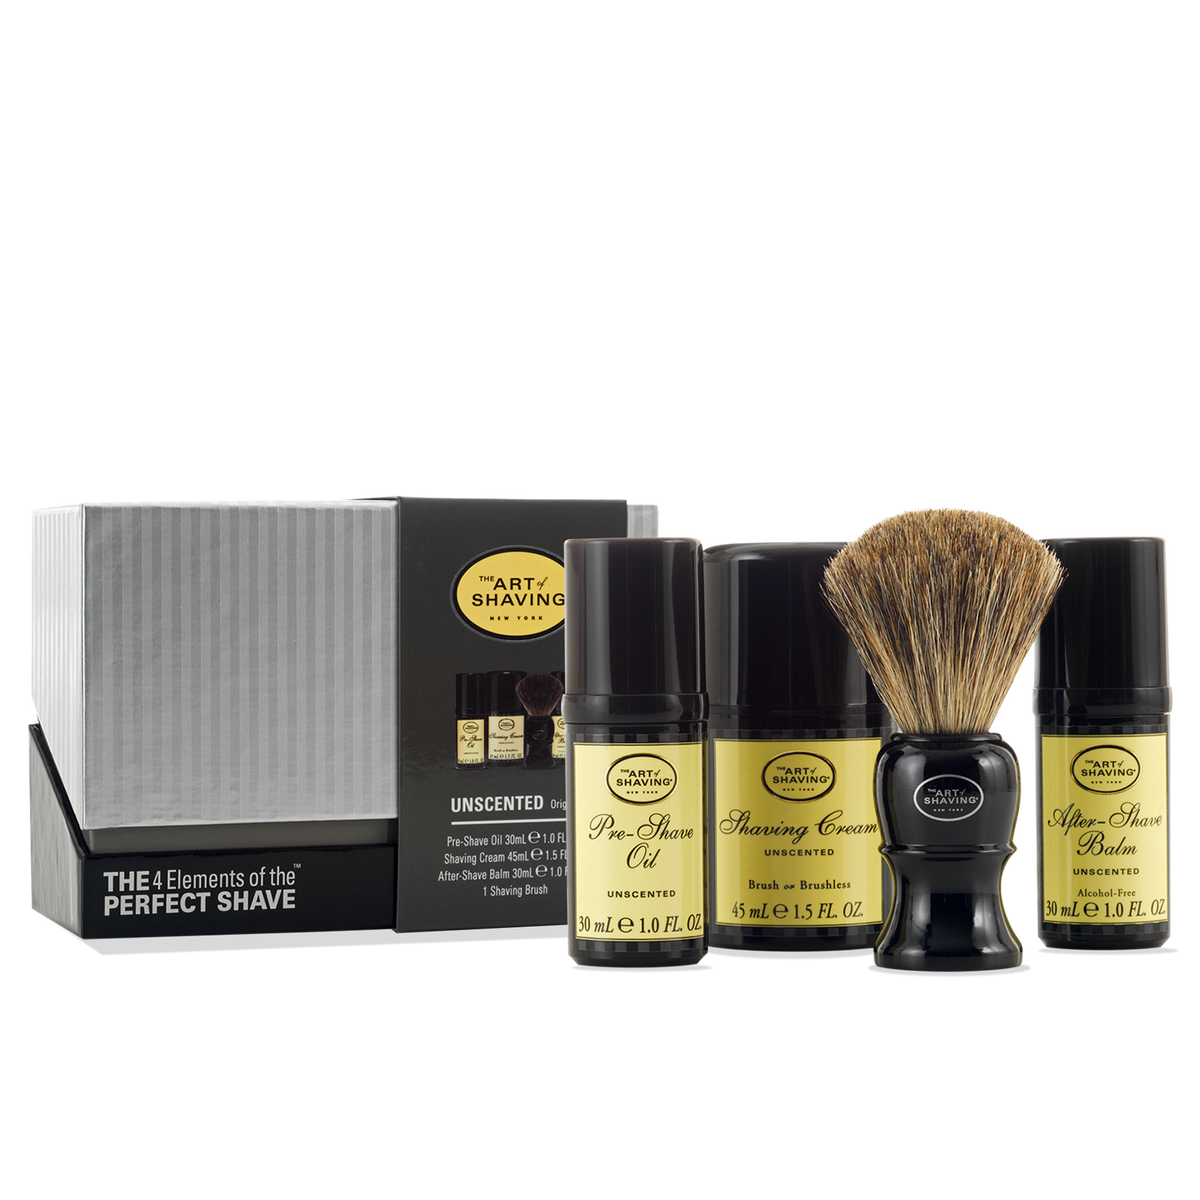 THE ART OF SHAVING UNSCENTED MID SIZE THE 4 ELEMENTS OF THE PERFECT SHAVE